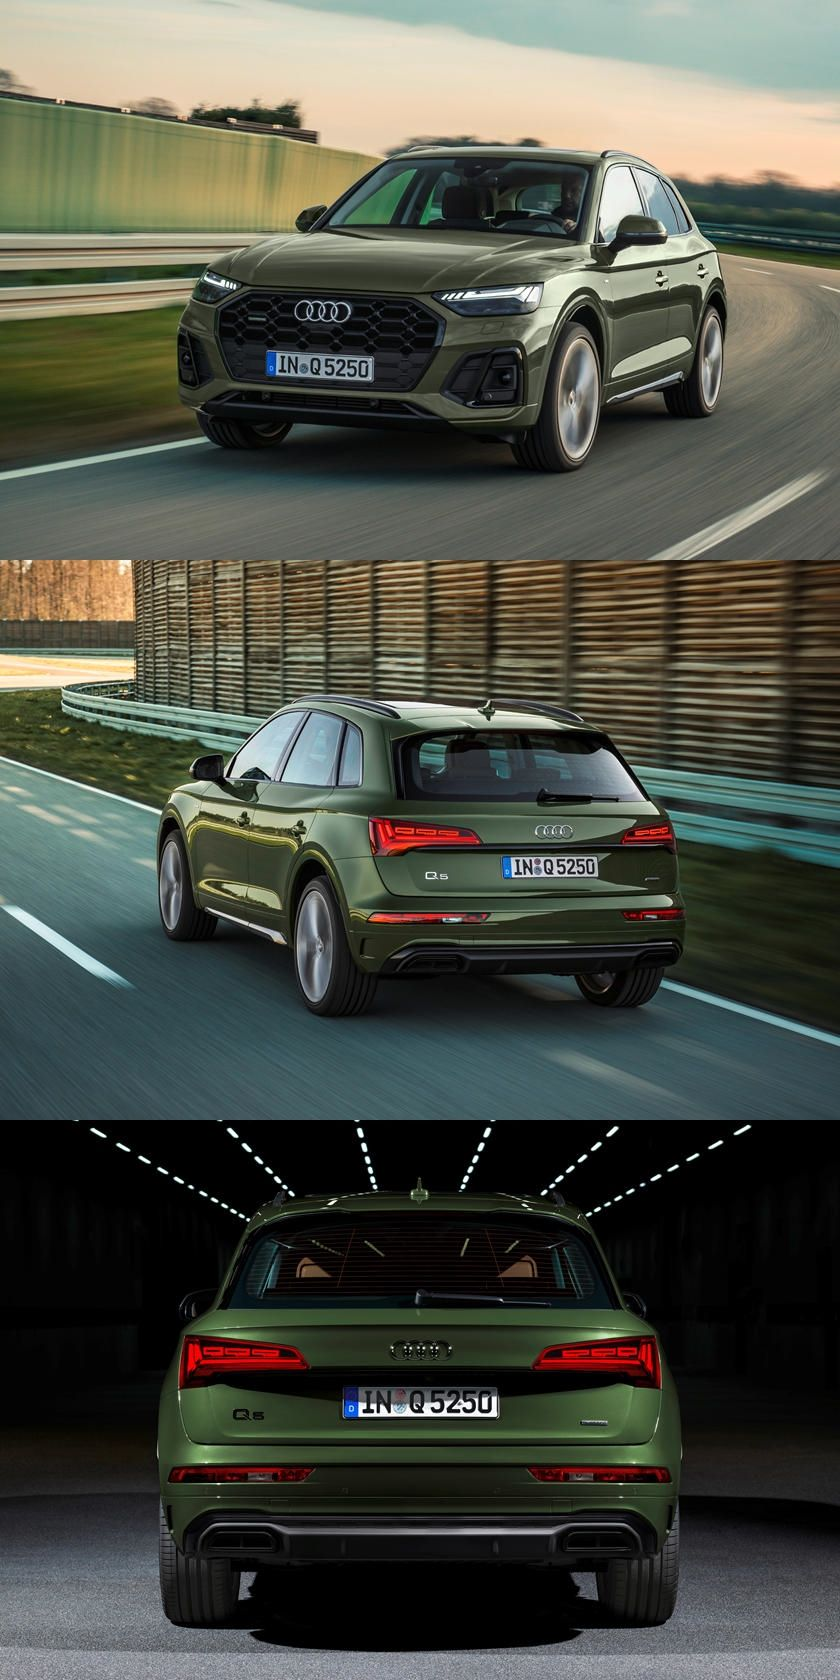 Best Selling Suv 2021 2021 Audi Q5 Arrives With Sharper Looks And Improved Tech. Audi's